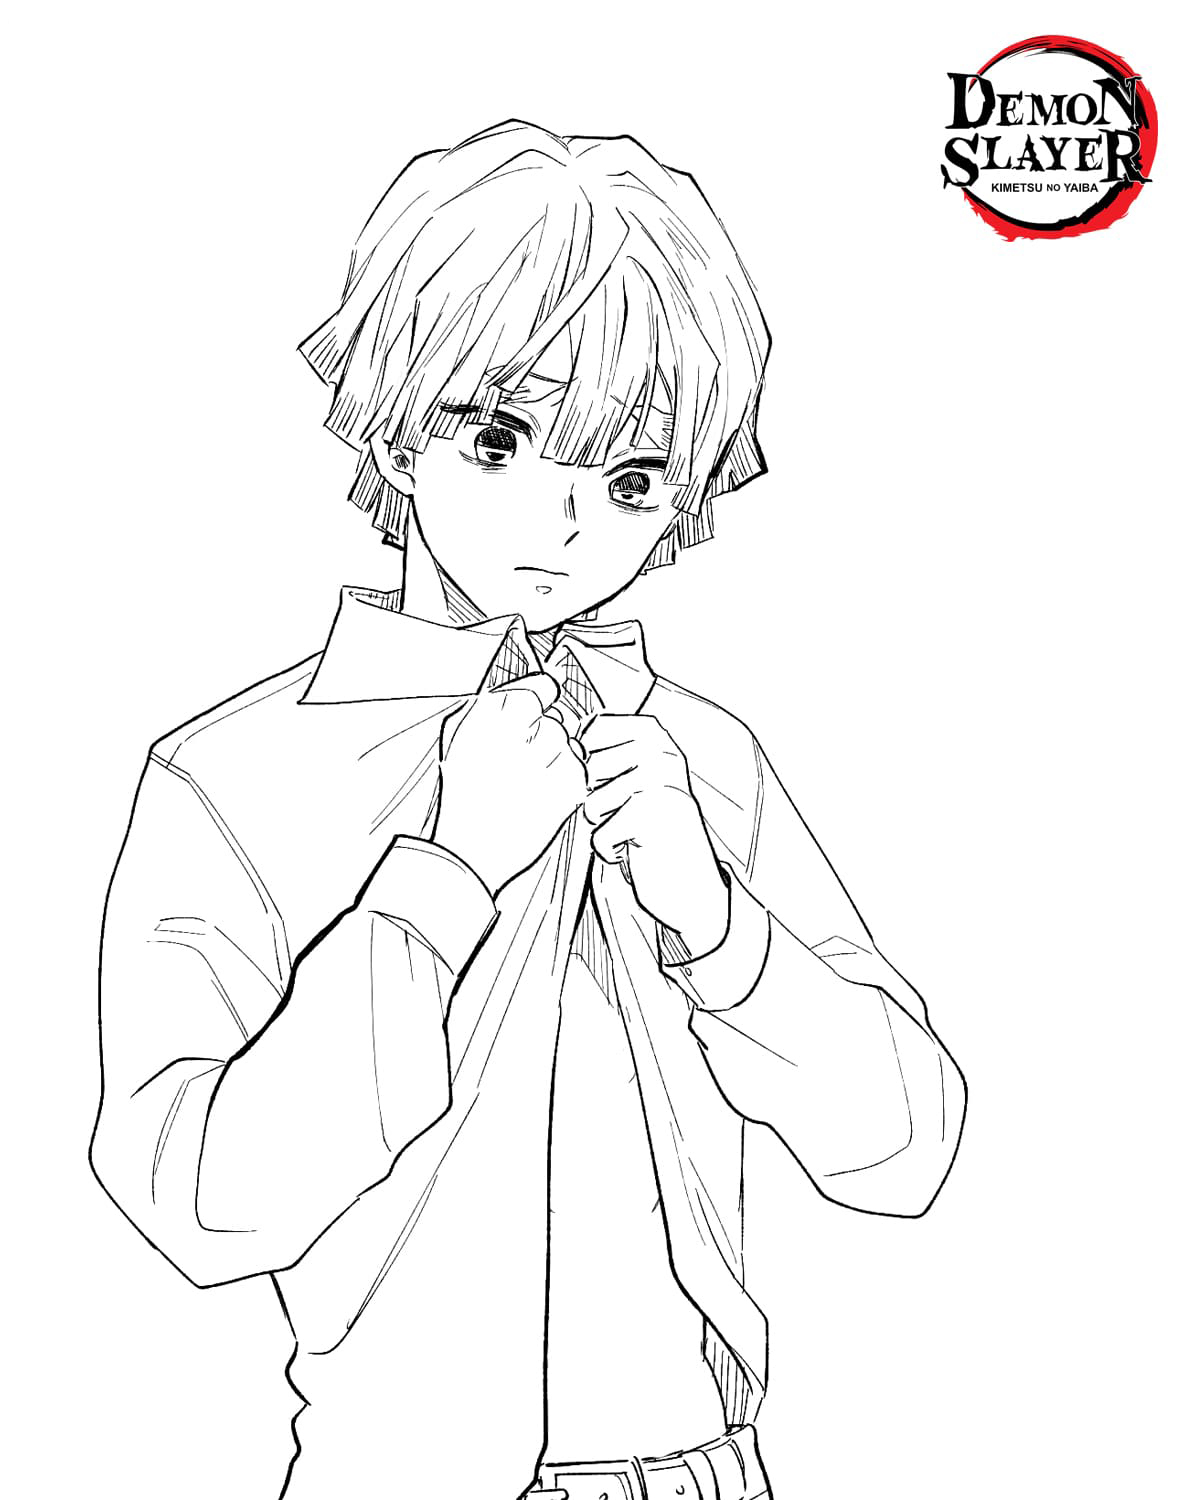 Zenitsu Highschool boy Coloring Page